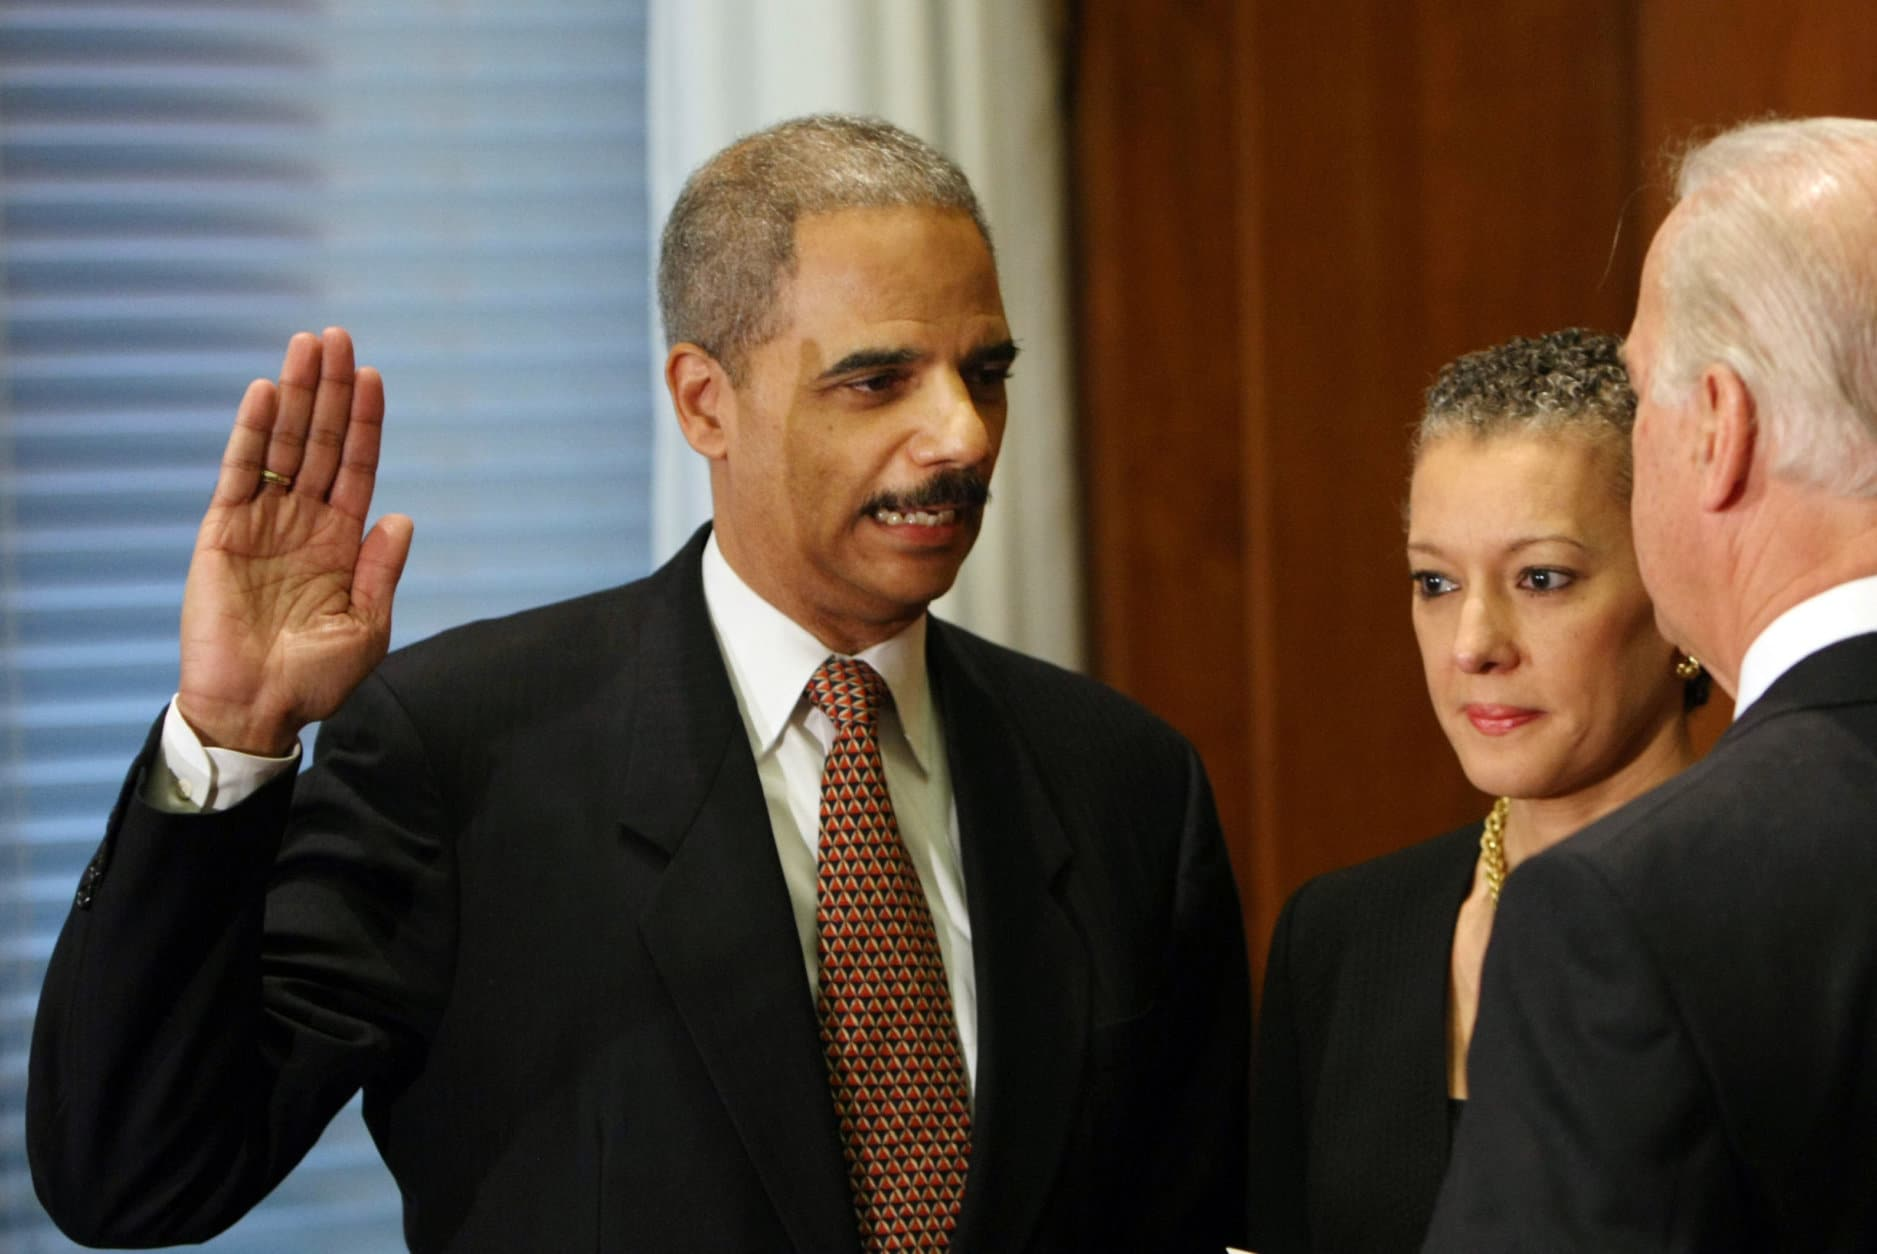 ** RETRANSMISSION FOR ALTERNATE CROP ** Vice President Joseph Biden administers the oath of office to Attorney General Eric Holder during a ceremony at the Justice Department in Washington, Tuesday, Feb. 3, 2009. Holder's wife Sharon Malone is at center. (AP Photo/Gerald Herbert)